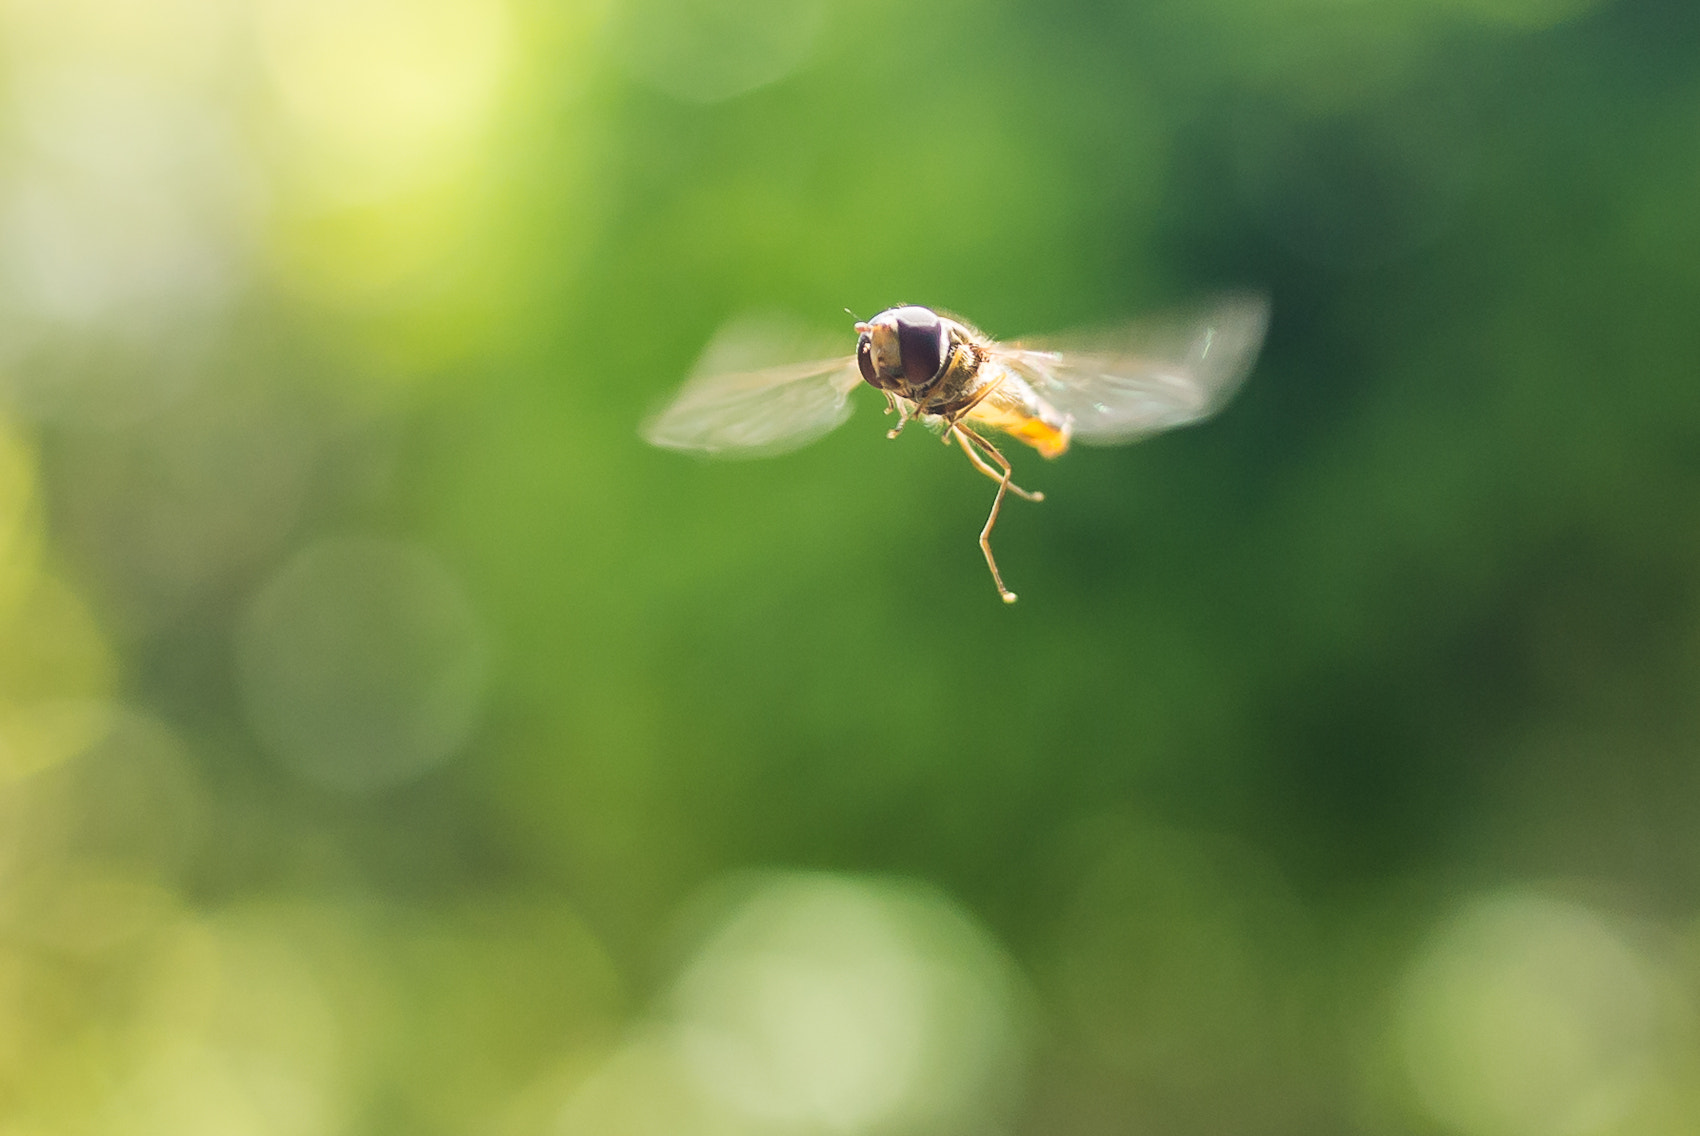 Photograph Syrphe - Hoverfly by Amine Fassi on 500px